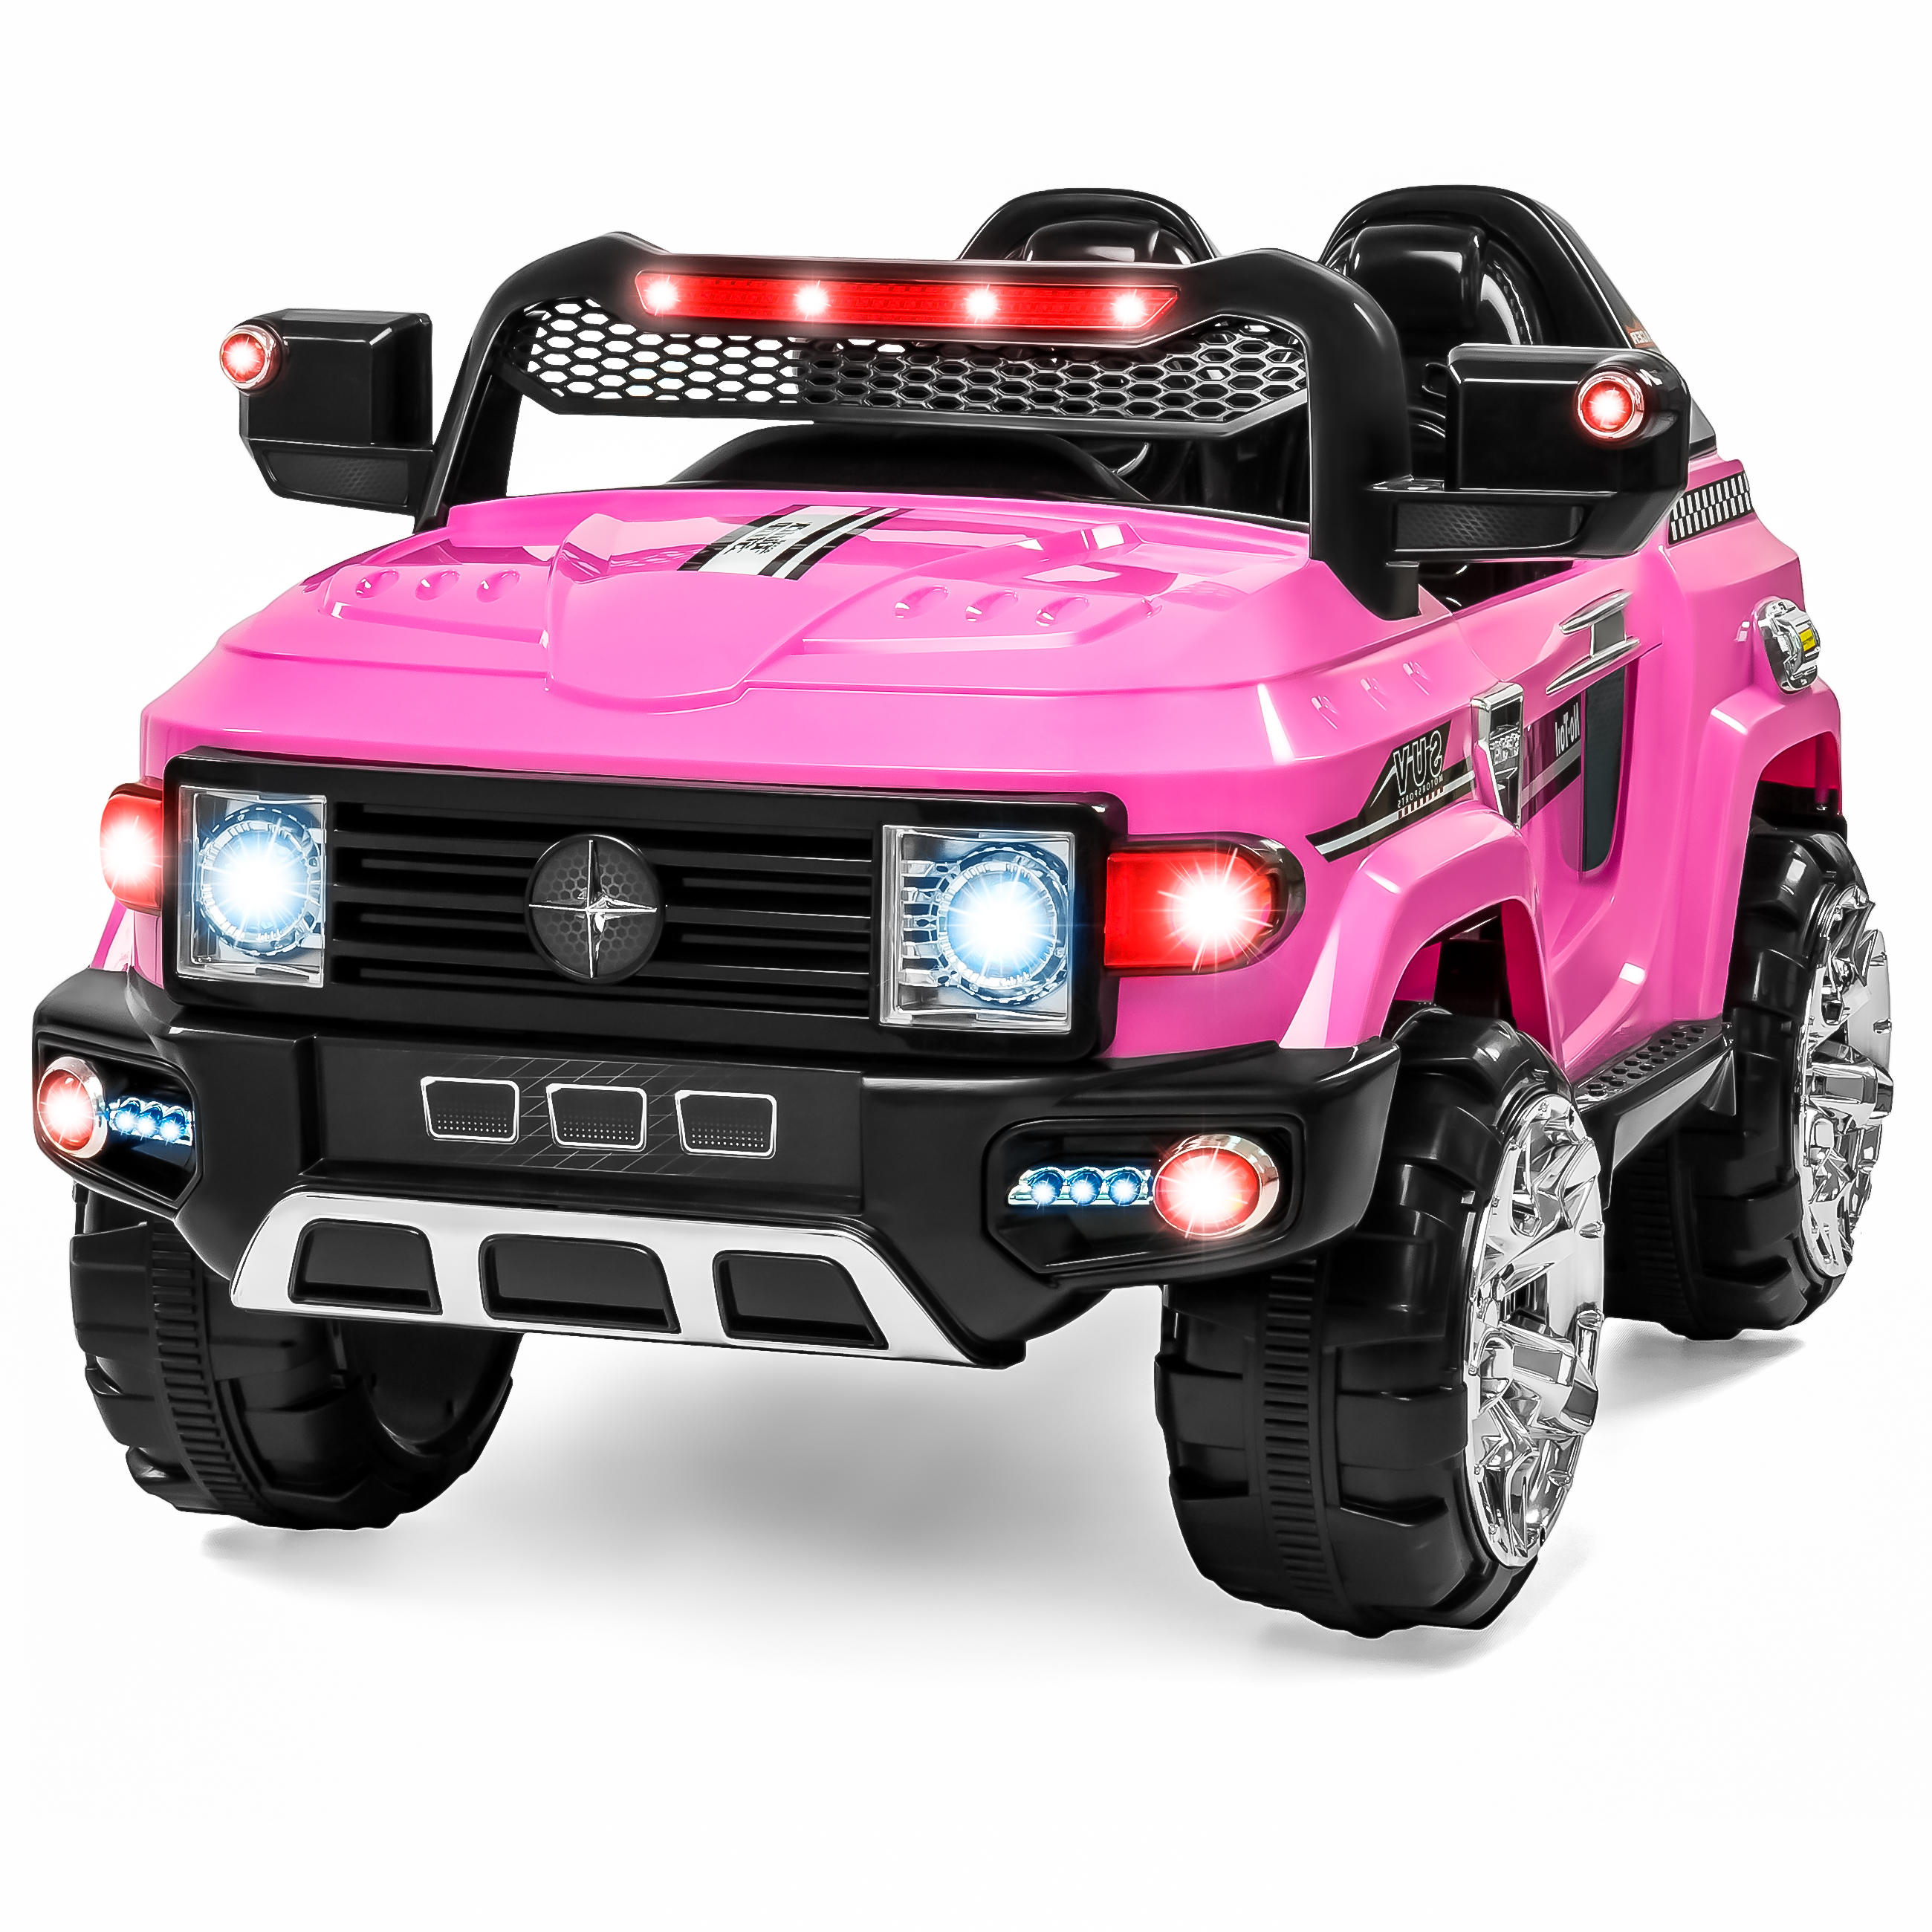 12V MP3 Kids Ride on Truck Car R/c Remote Control, LED Lights AUX and Music Pink